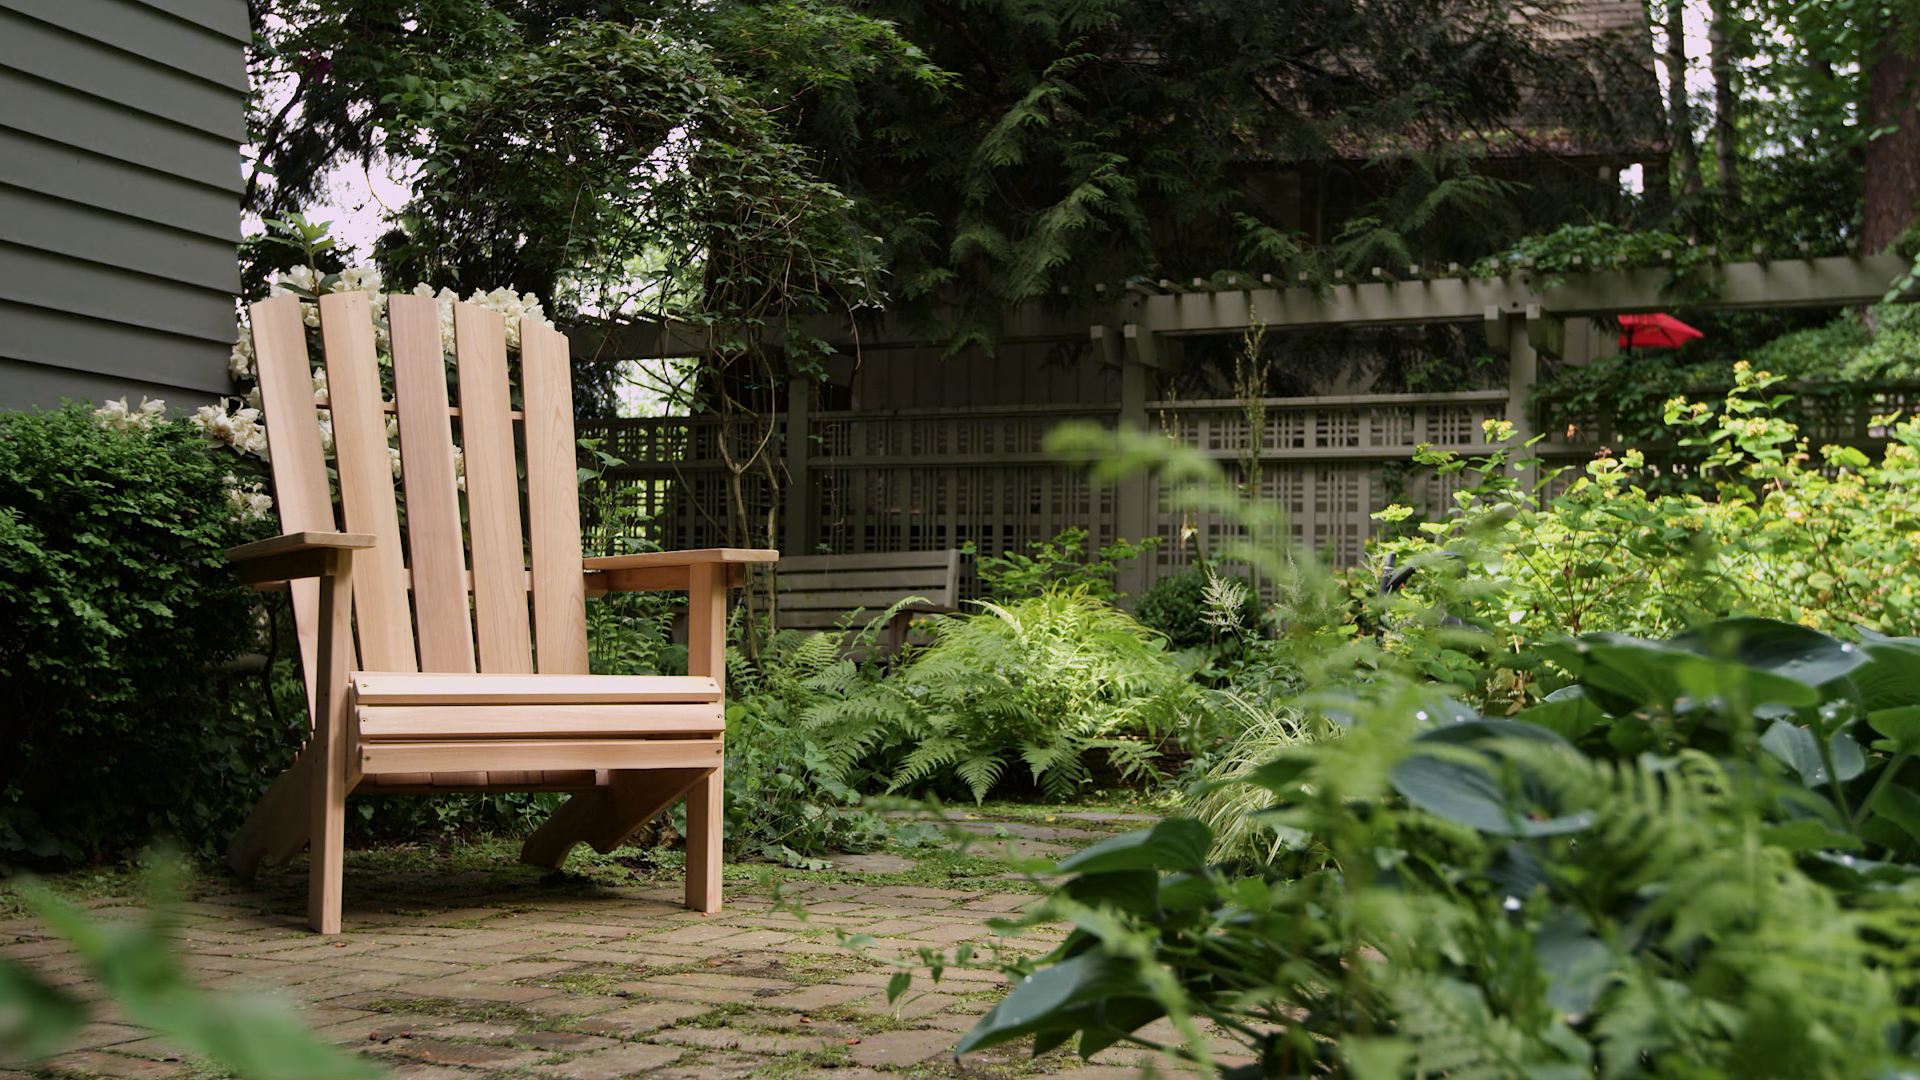 build an Adirondack chair at Seattle garden show